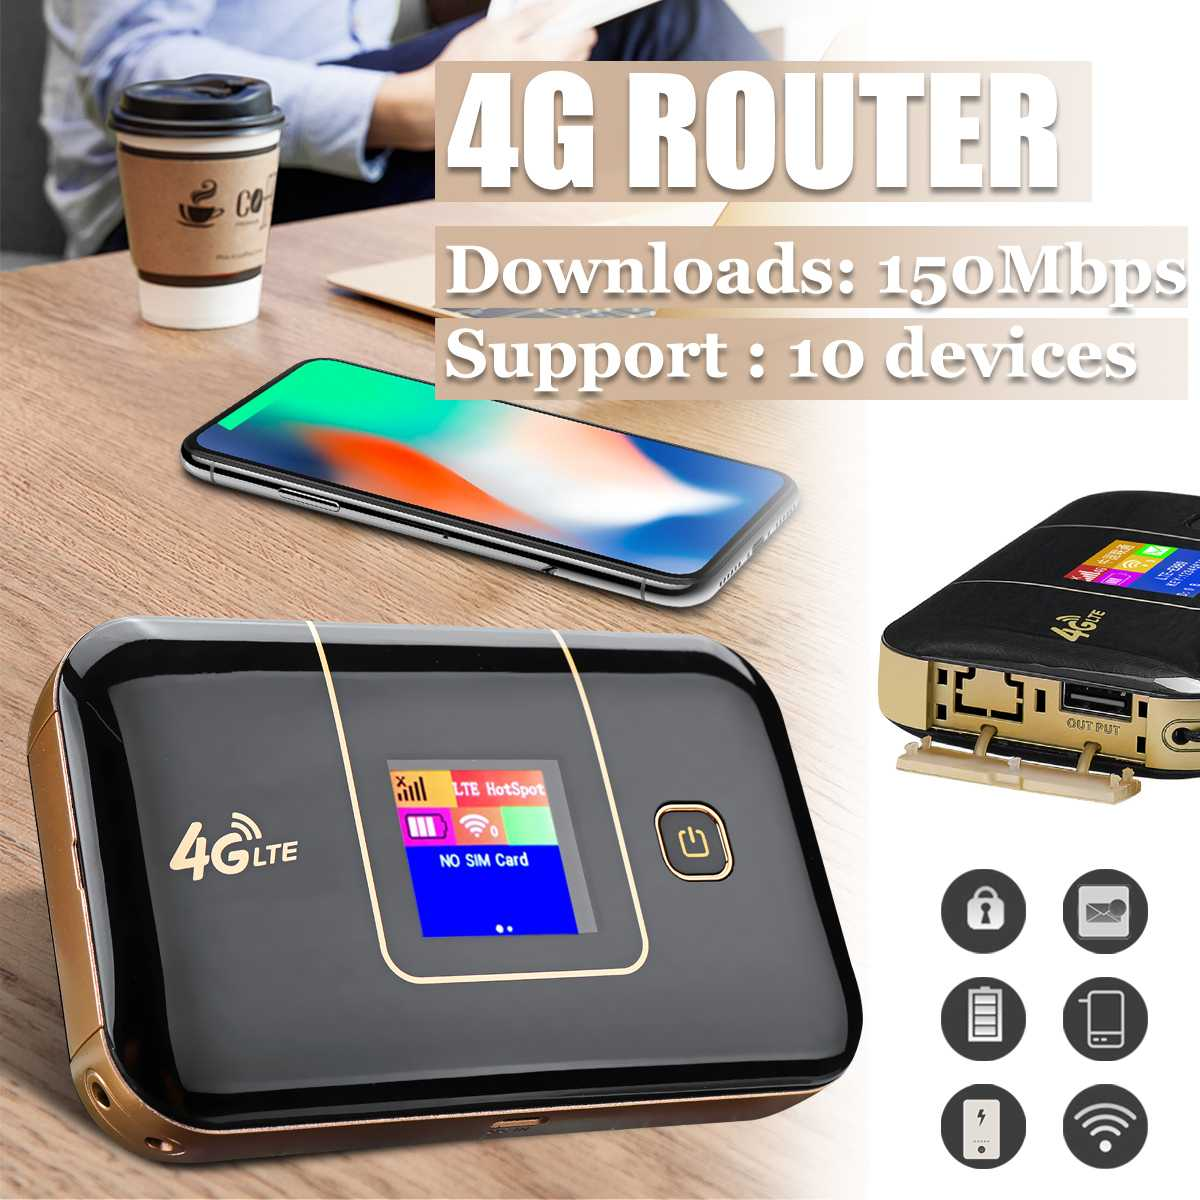 Portable 4G LTE Mobile WiFi Router Wireless Pockets Secure Hotspot 150Mbps High Speed Battery Charger Support SIM TF Card SlotPortable 4G LTE Mobile WiFi Router Wireless Pockets Secure Hotspot 150Mbps High Speed Battery Charger Support SIM TF Card Slot